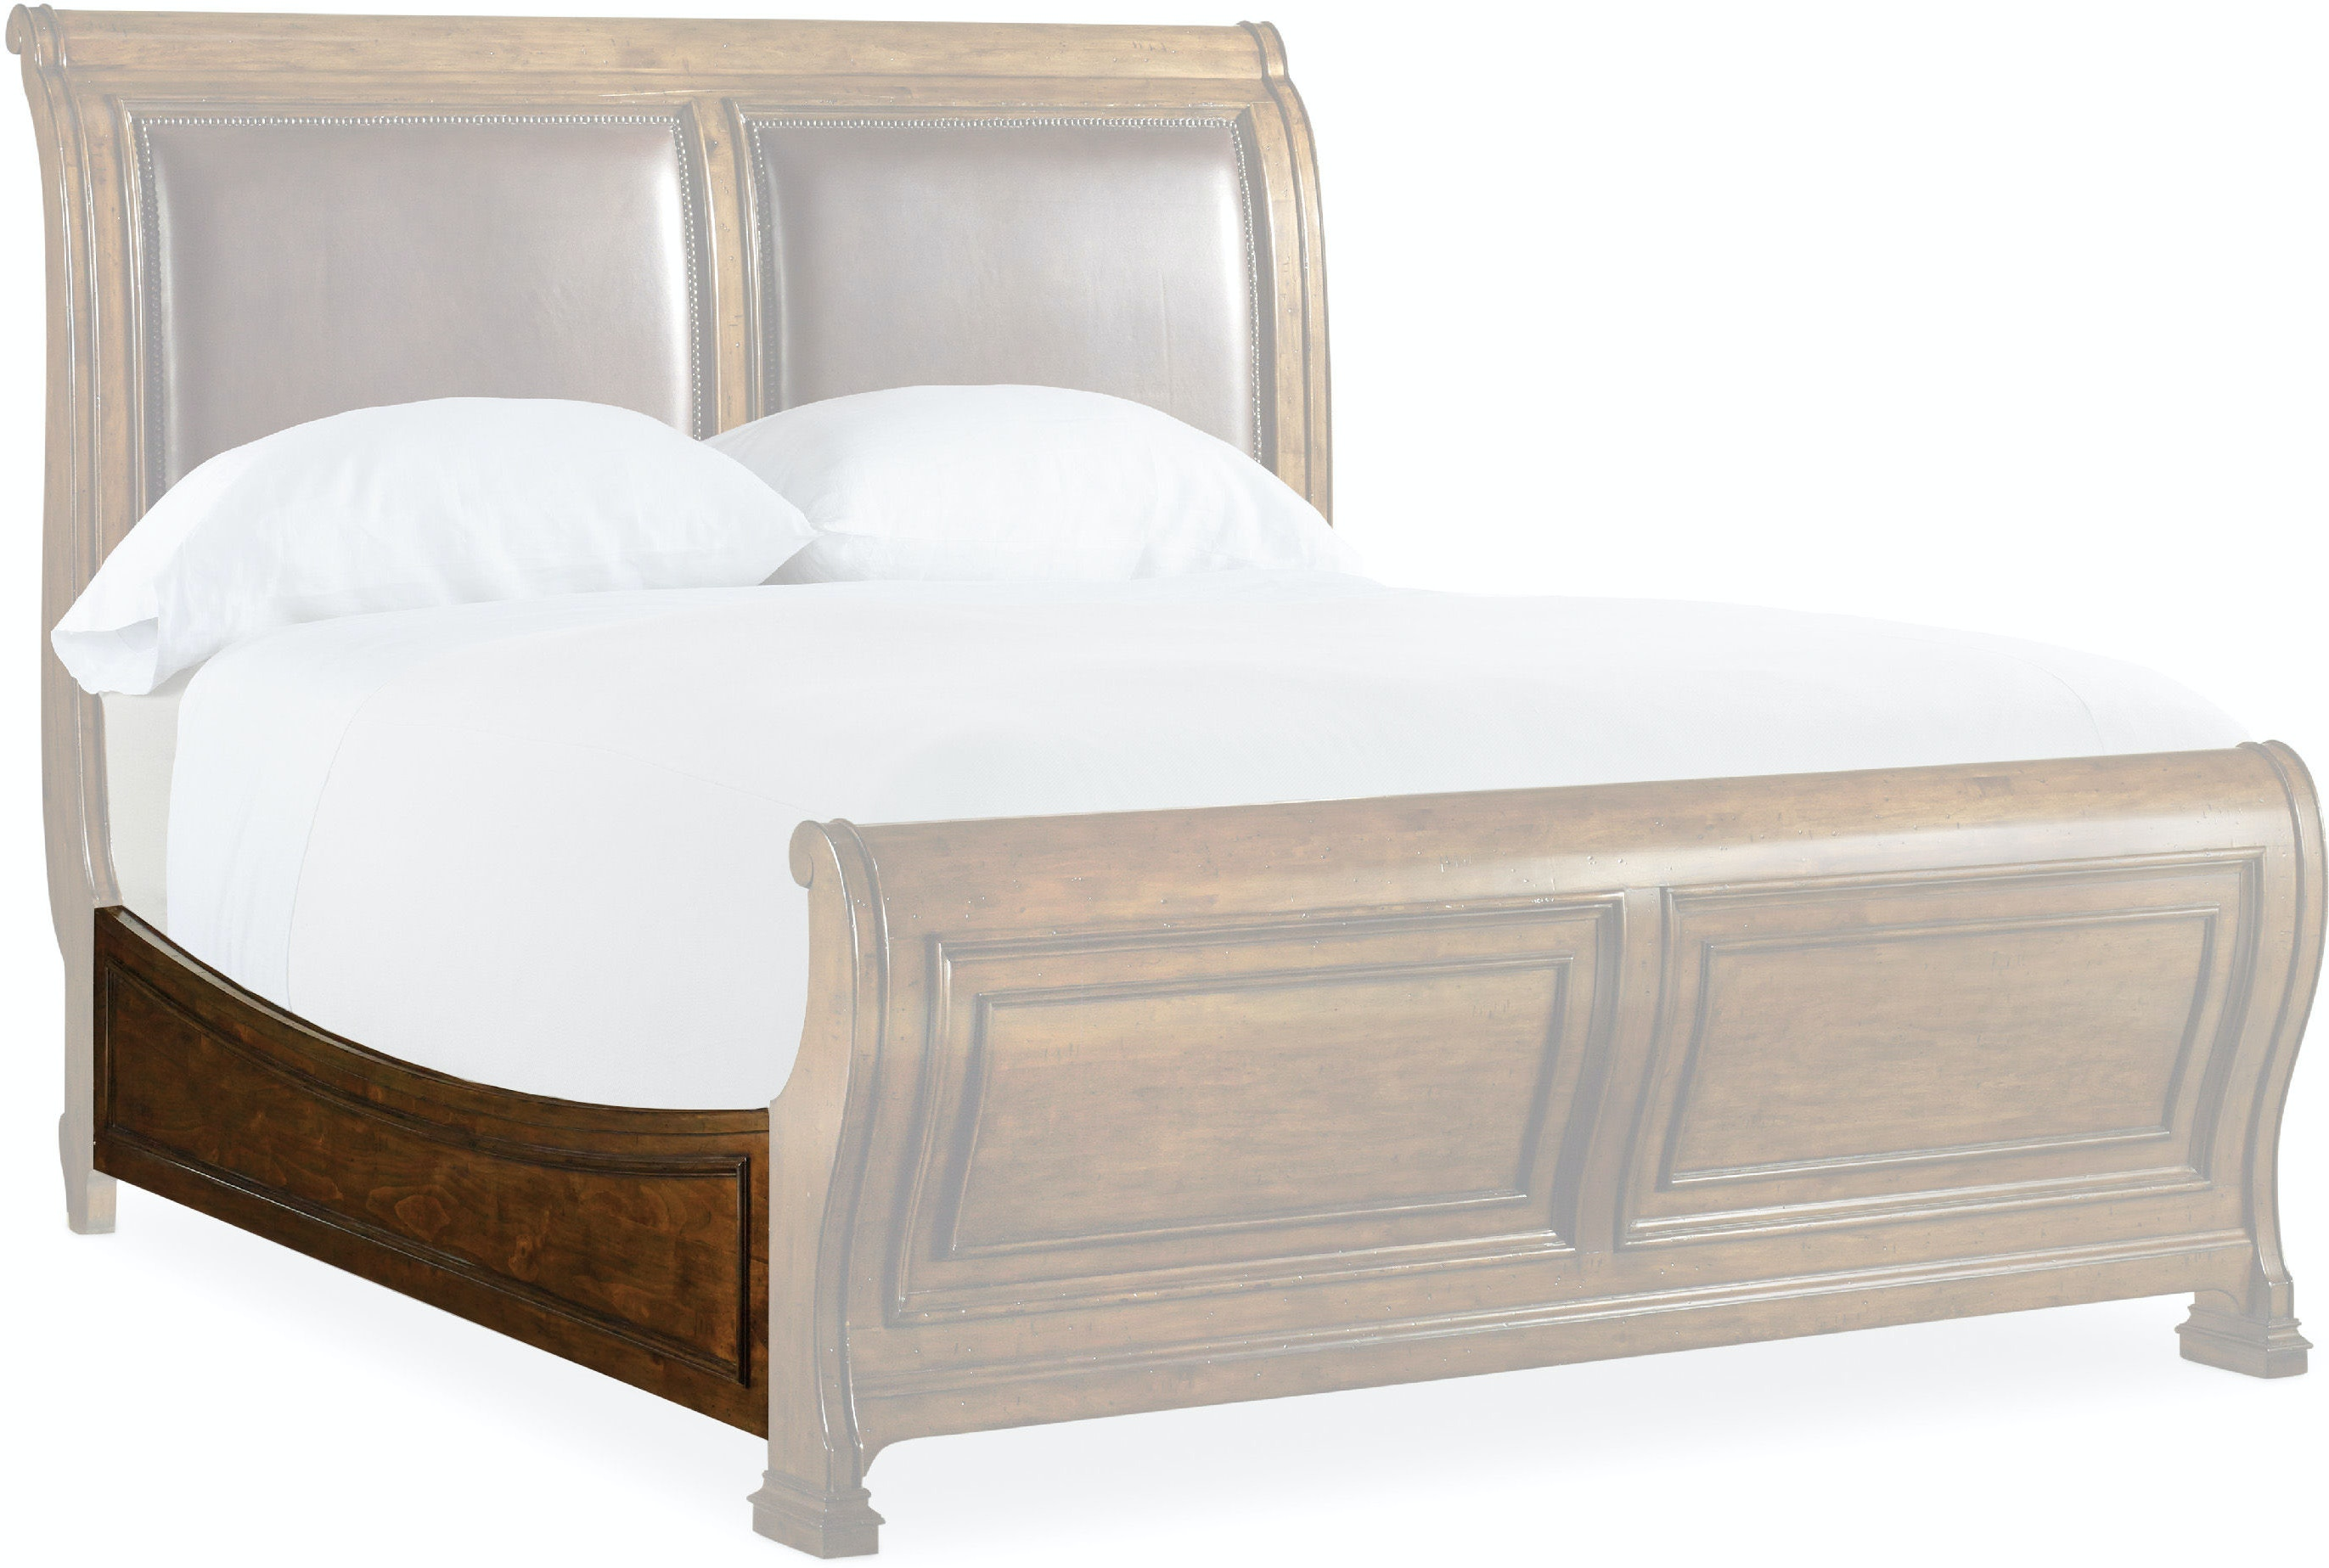 Hooker Furniture Bedroom Tynecastle King Sleigh Bed 5323 90466